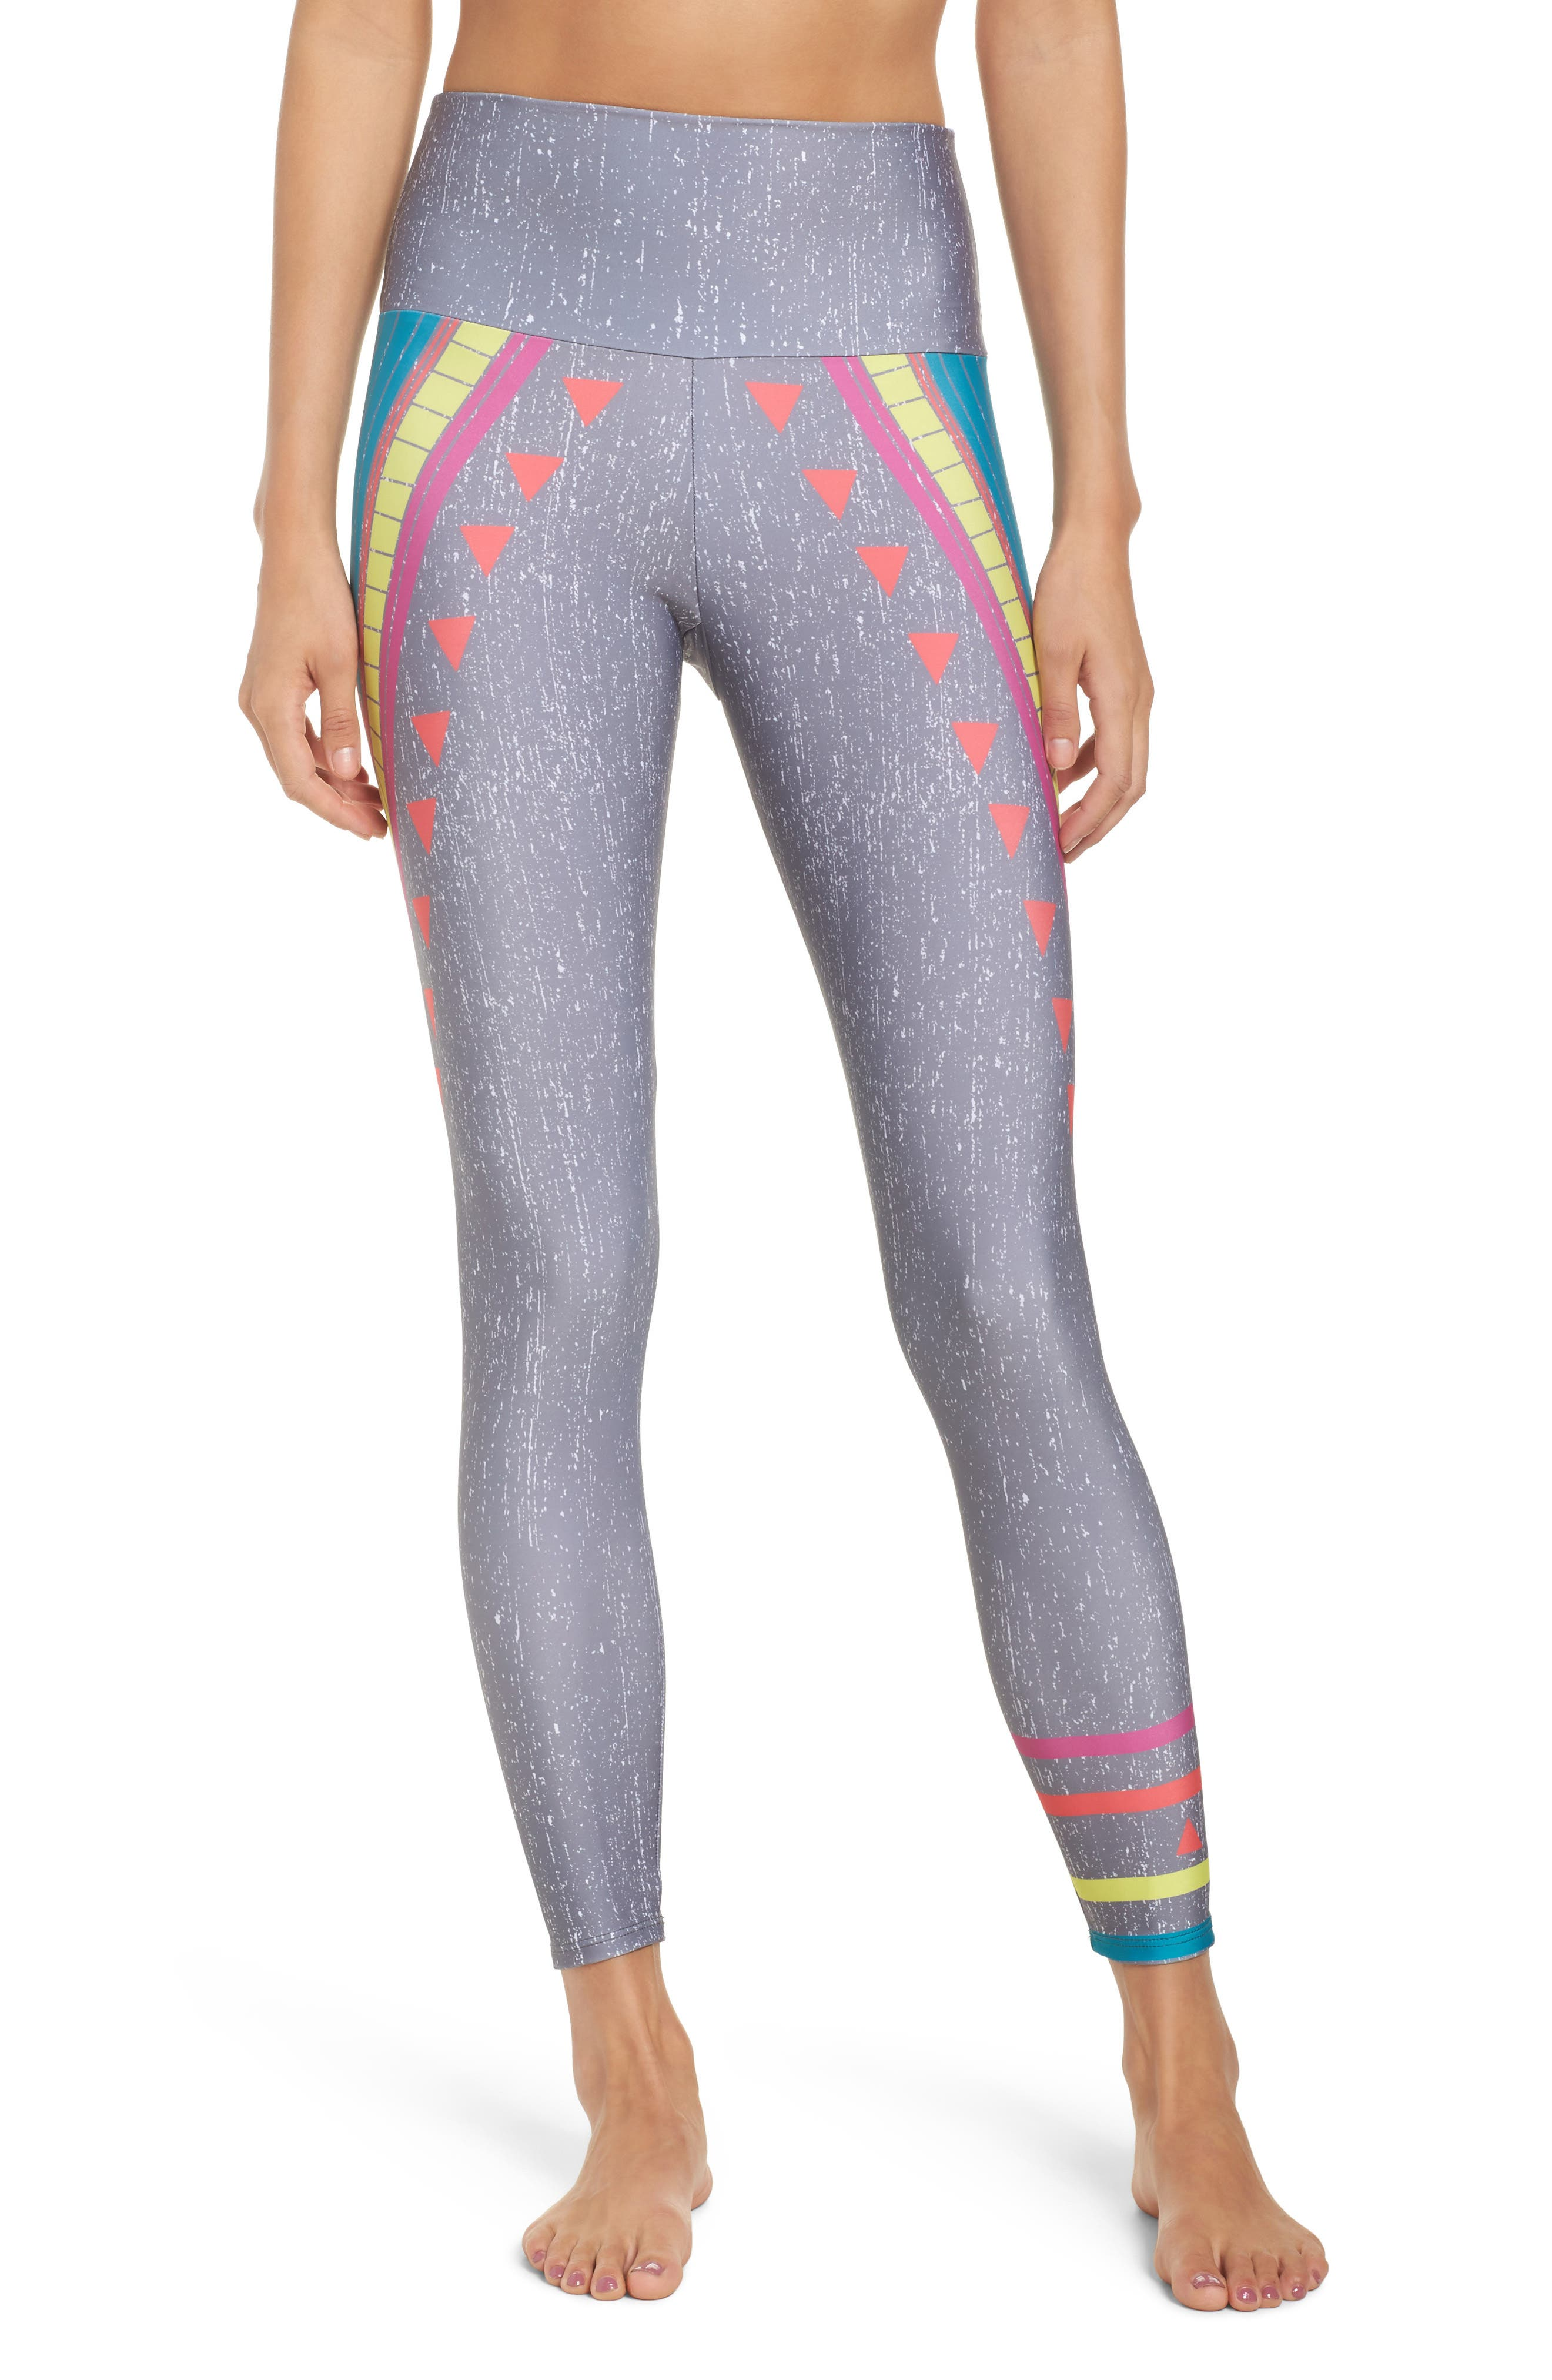 Main Image - Onzie High Waist Graphic Leggings